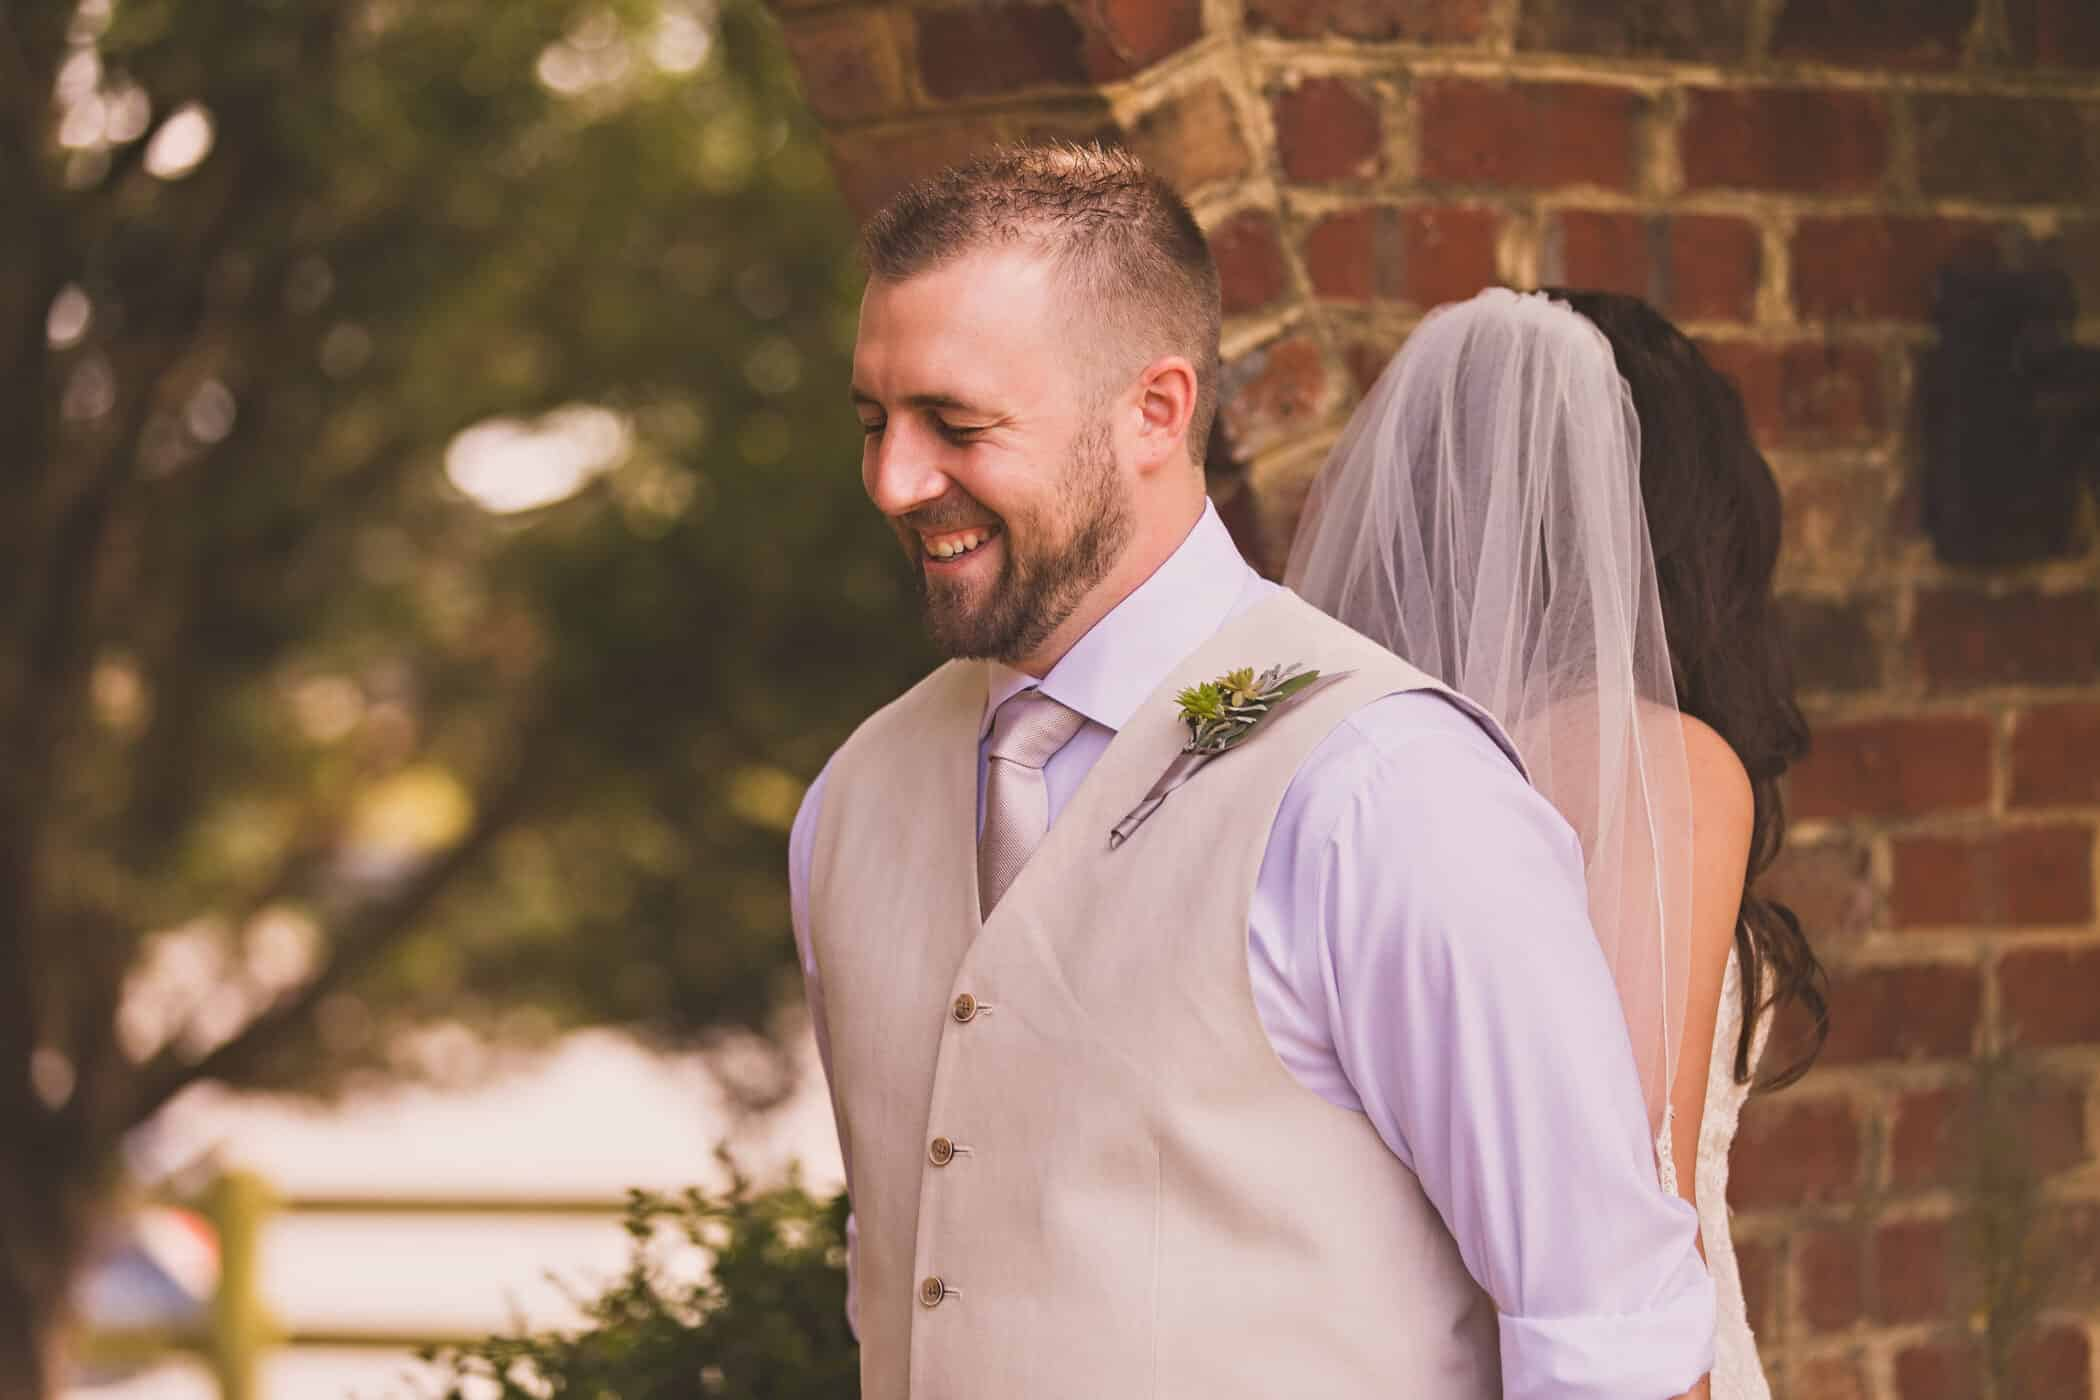 Adam & Brea's Fresh Elegance Wedding at West Manor Estate in Forest, VA | an Entwined Events venue | Megan Vaughan Photography